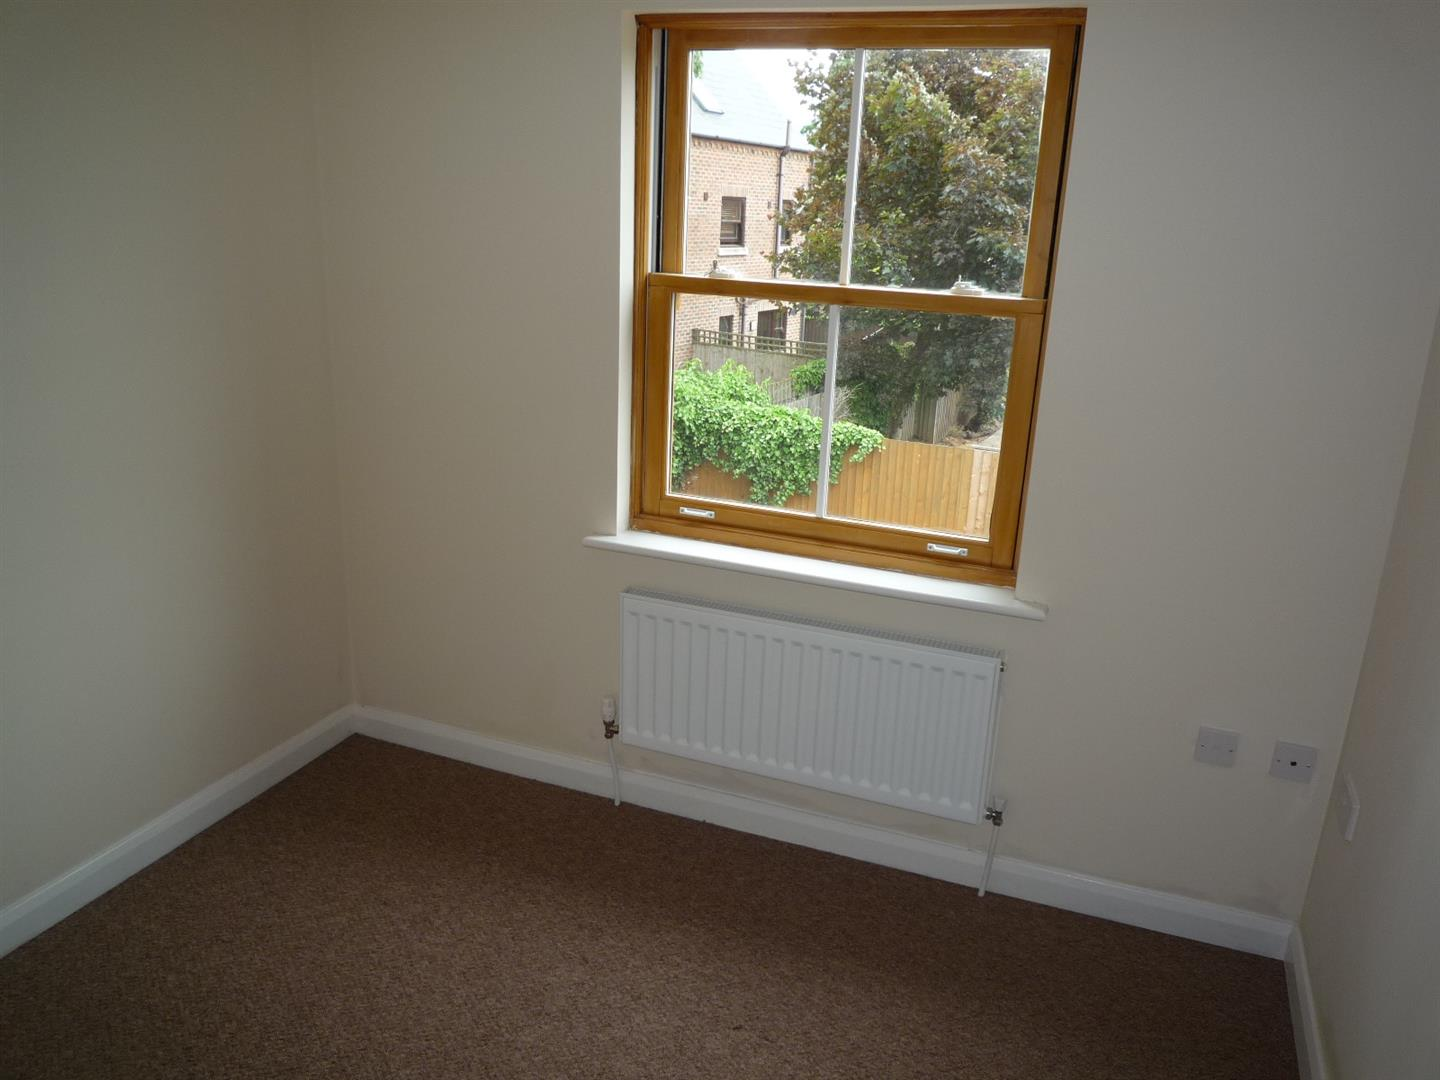 3 bed house to rent in Holbeach Spalding, PE12 7DR  - Property Image 6